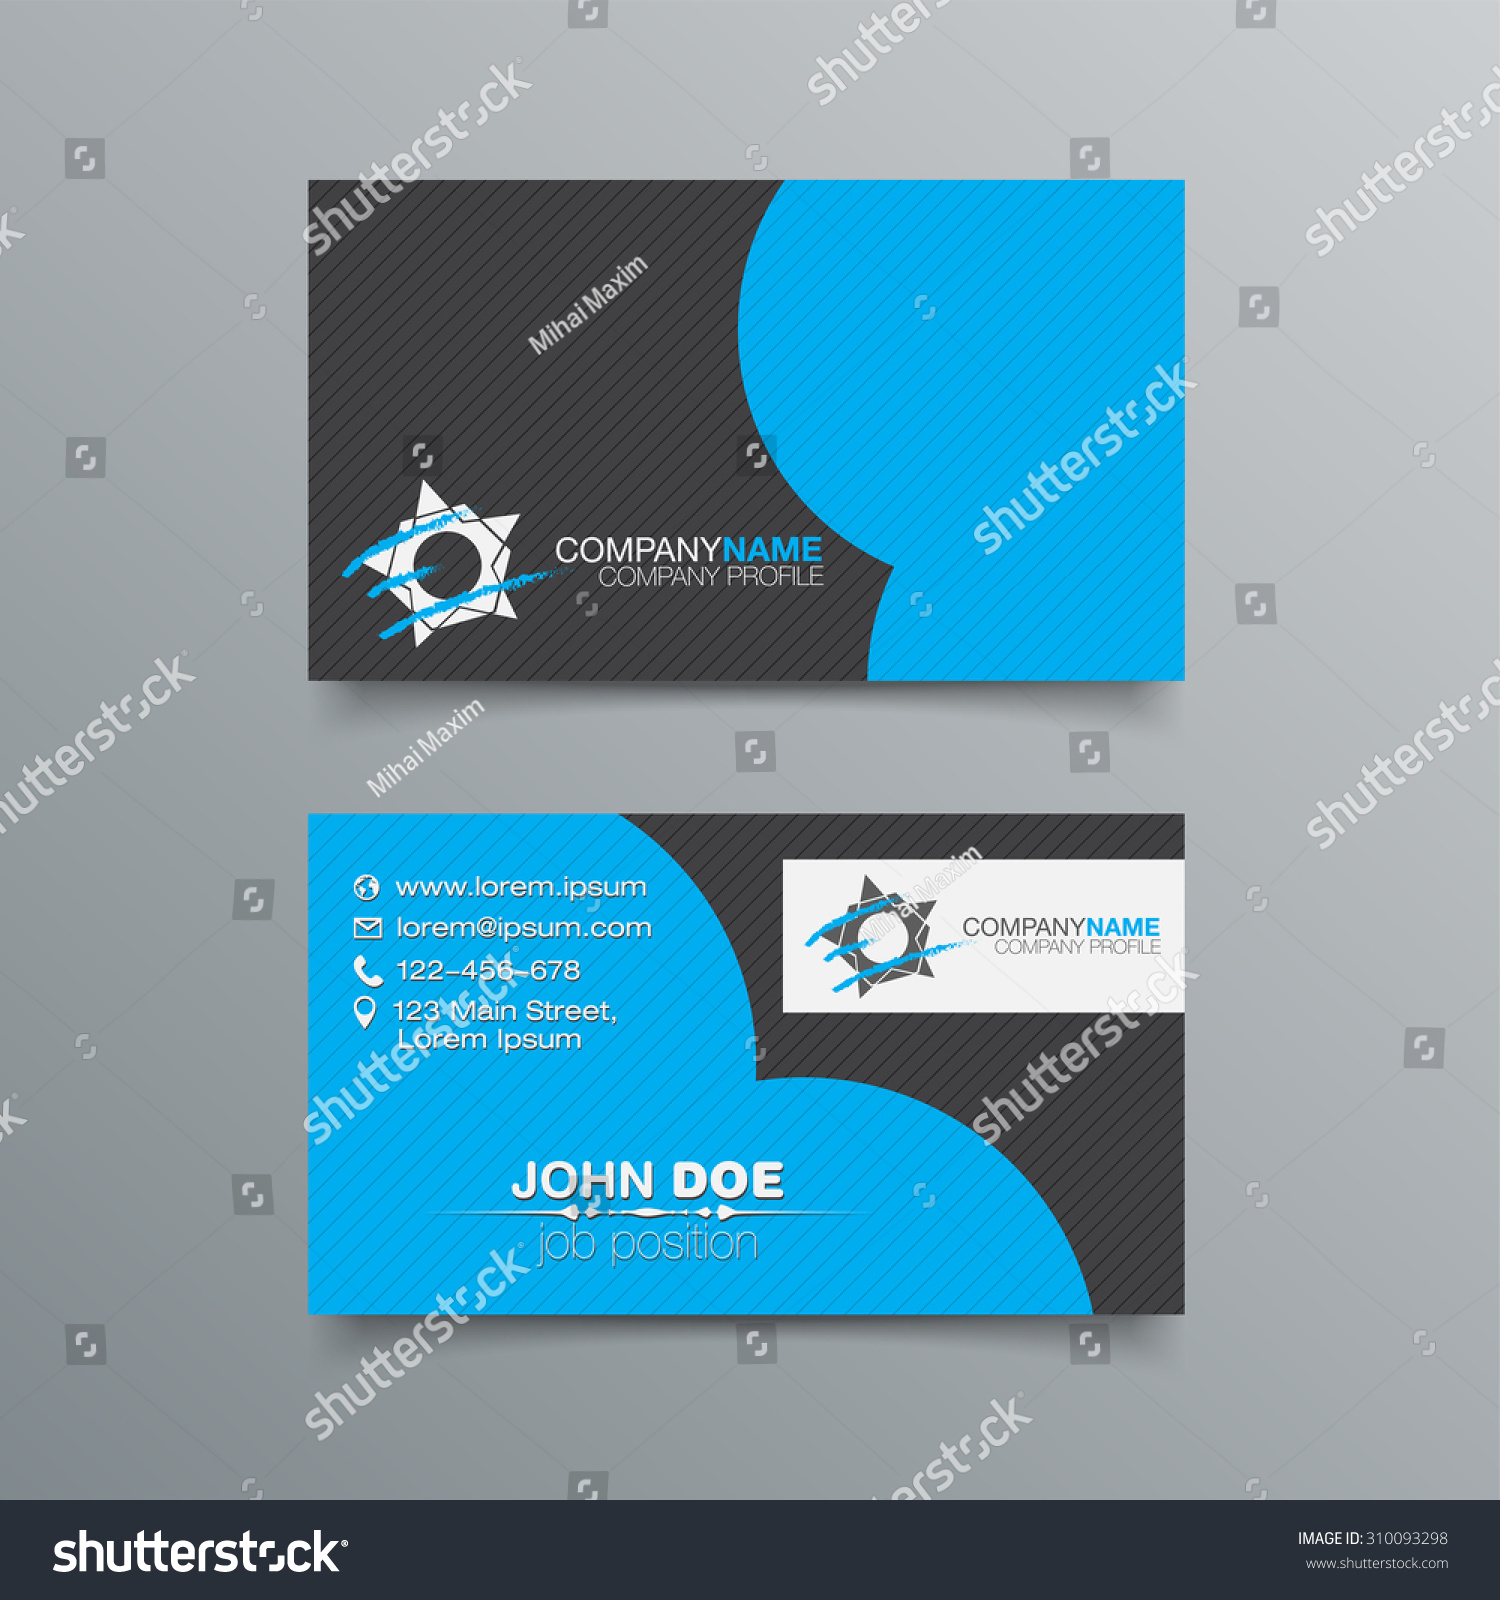 Business card background templates a set of six corporate elegant business card background templates wajeb Images